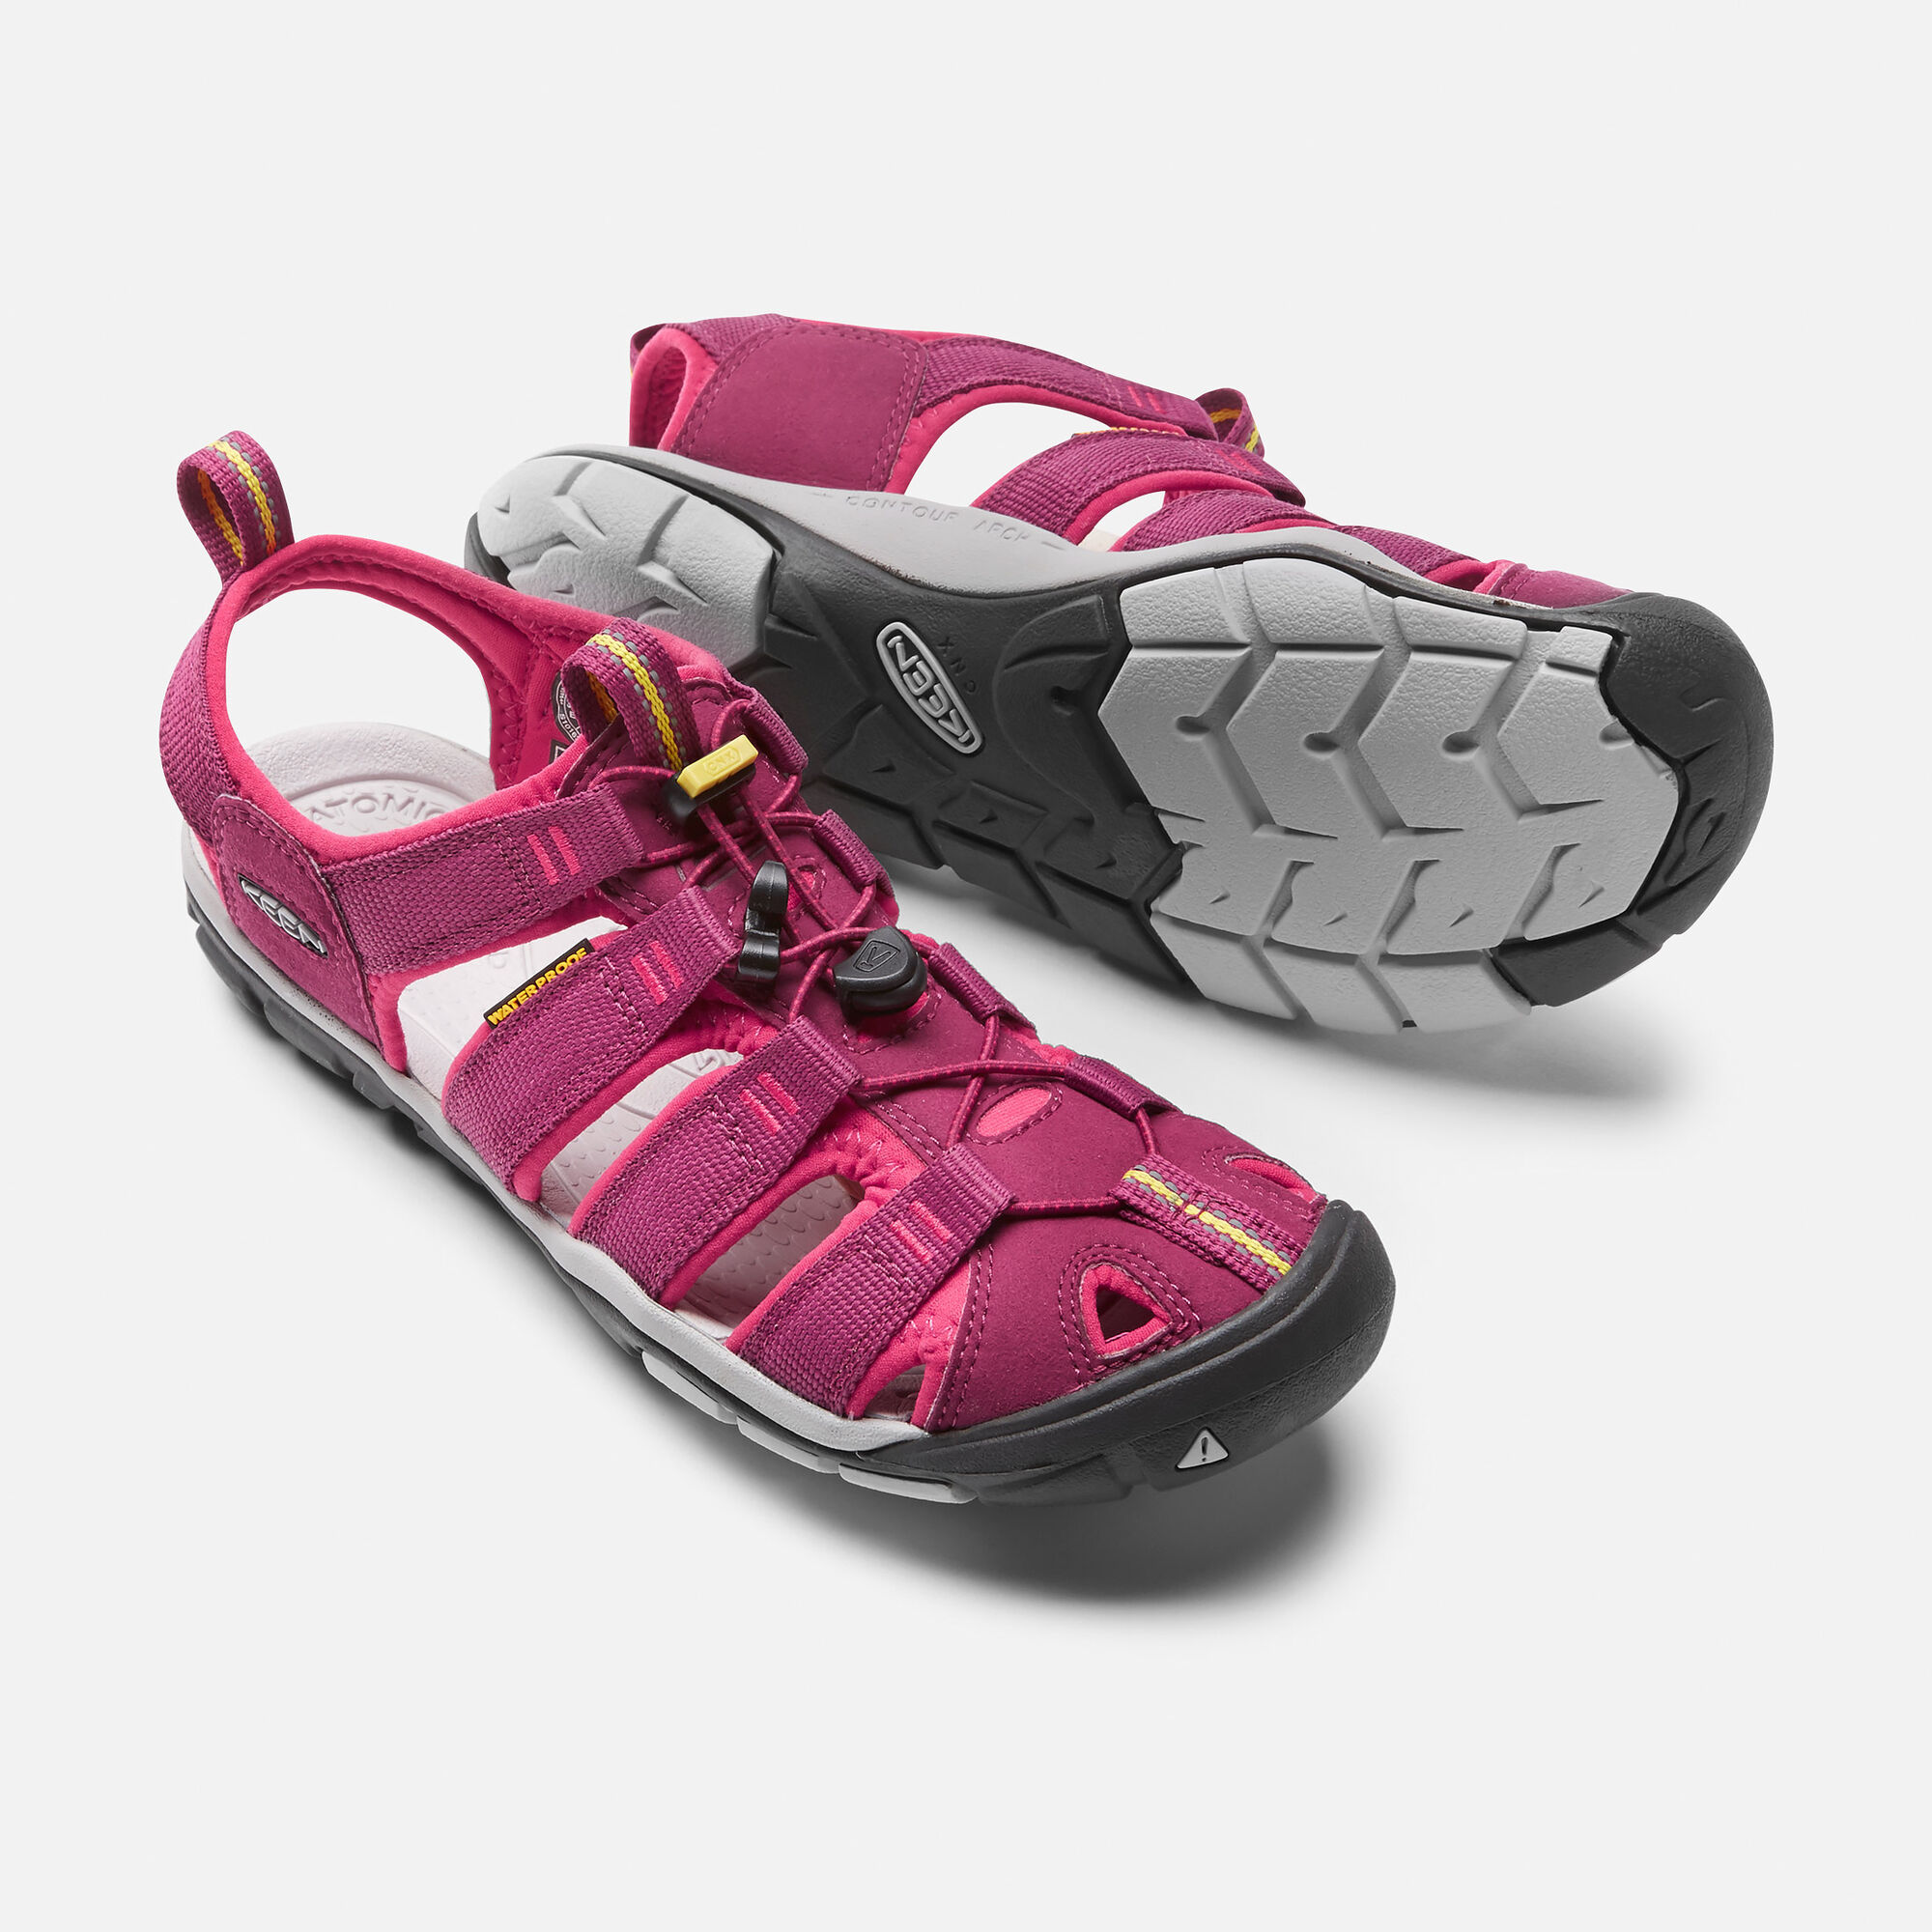 727e8722790b WOMEN S CLEARWATER CNX SANDALS in Anemone Acacia - small view.